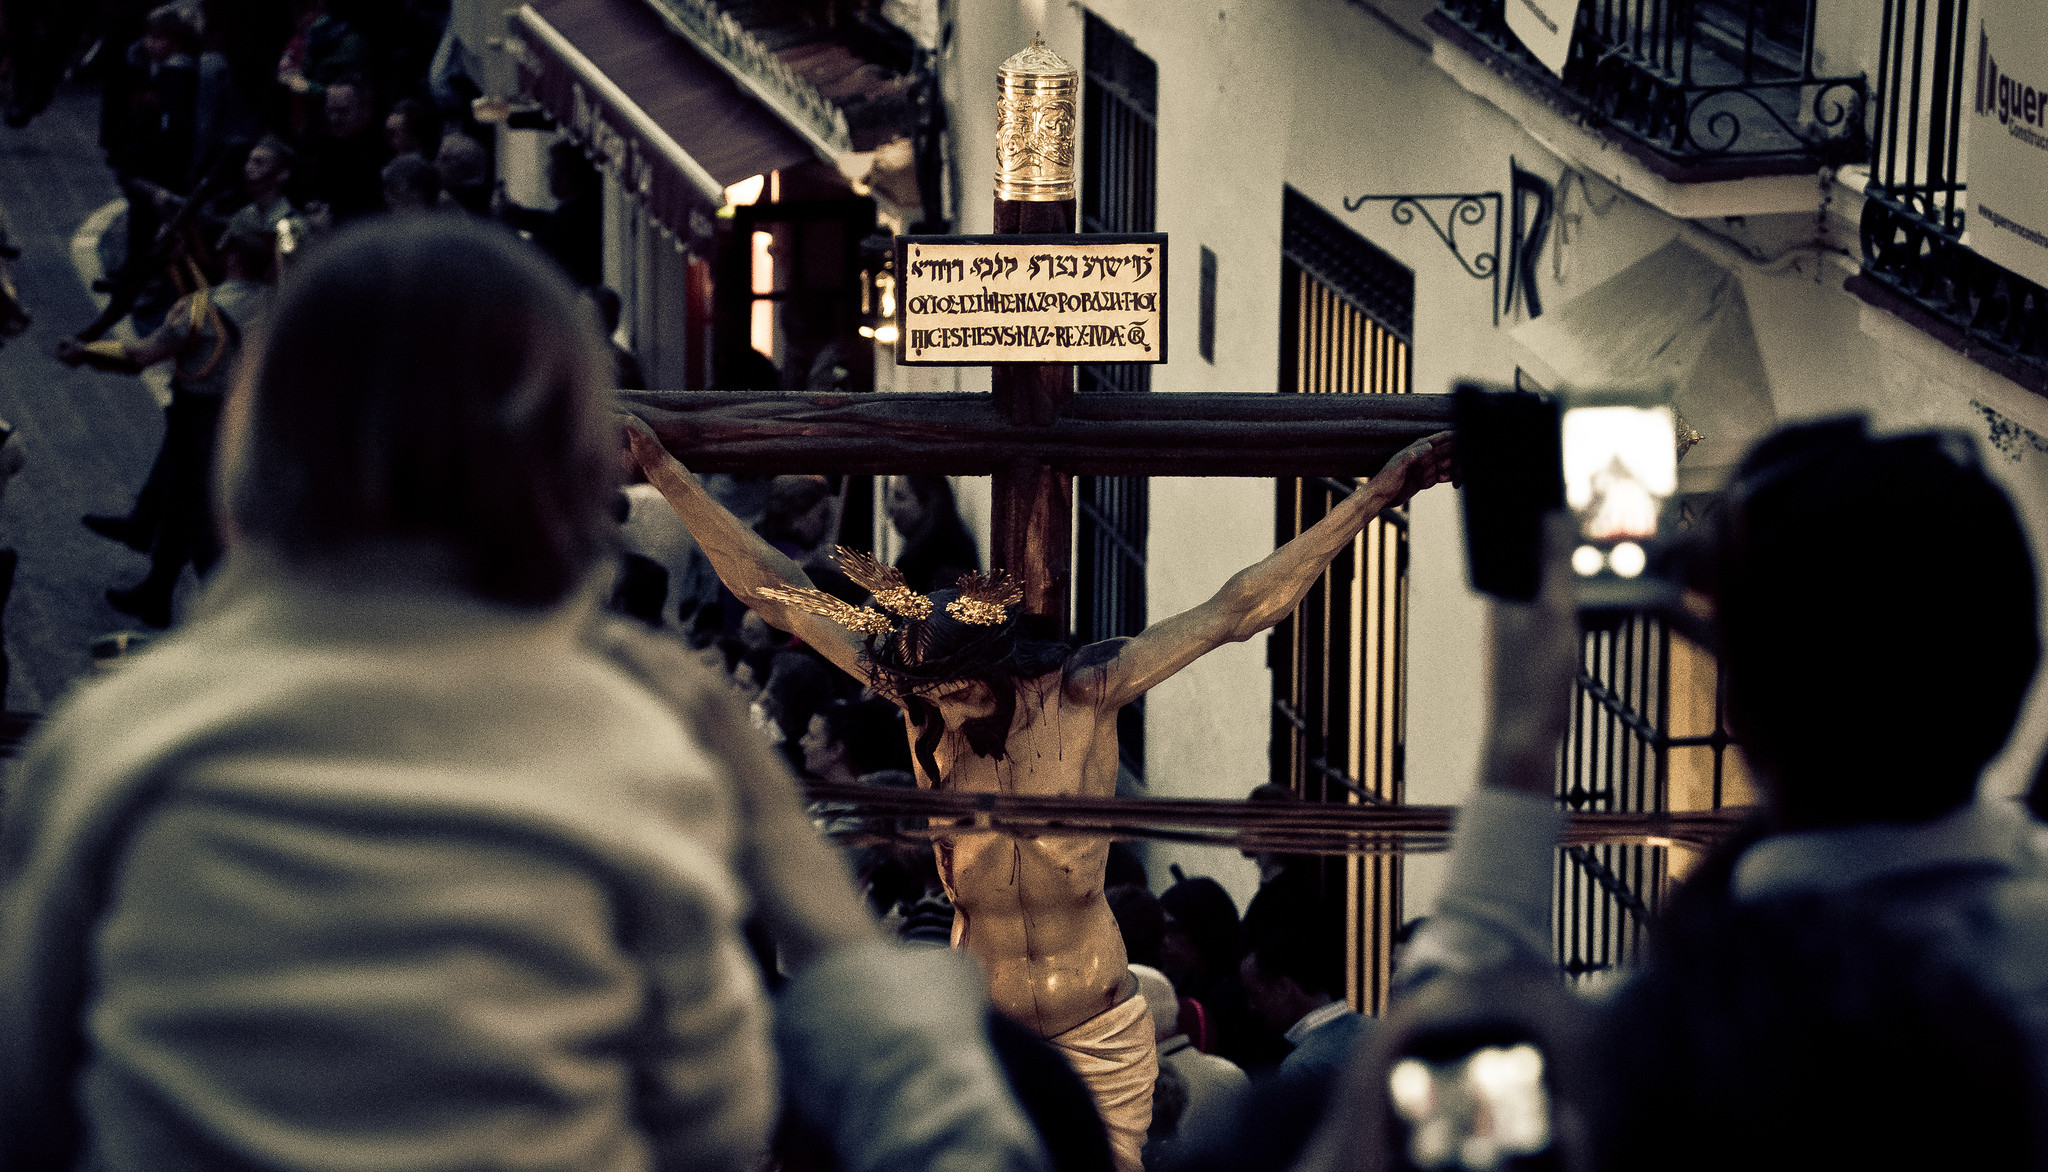 Praying before a Crucifix.